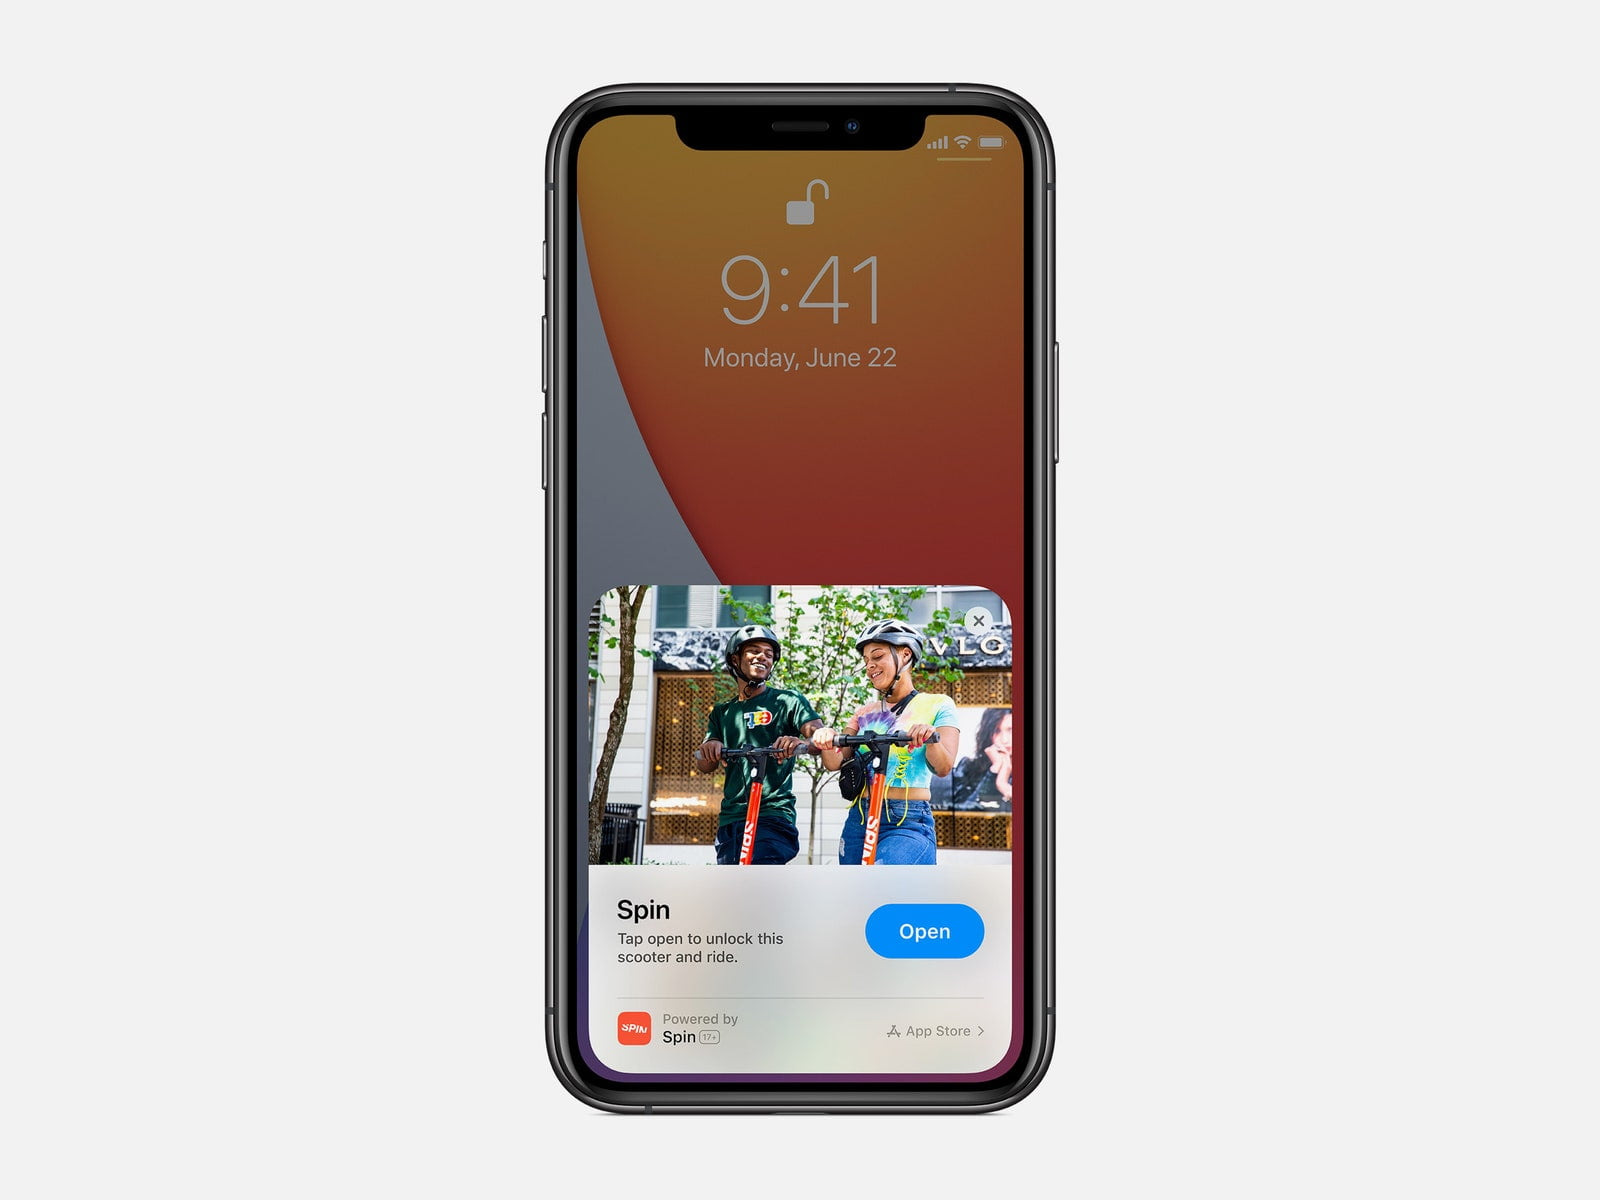 The Apple Clips app is updated with many new features